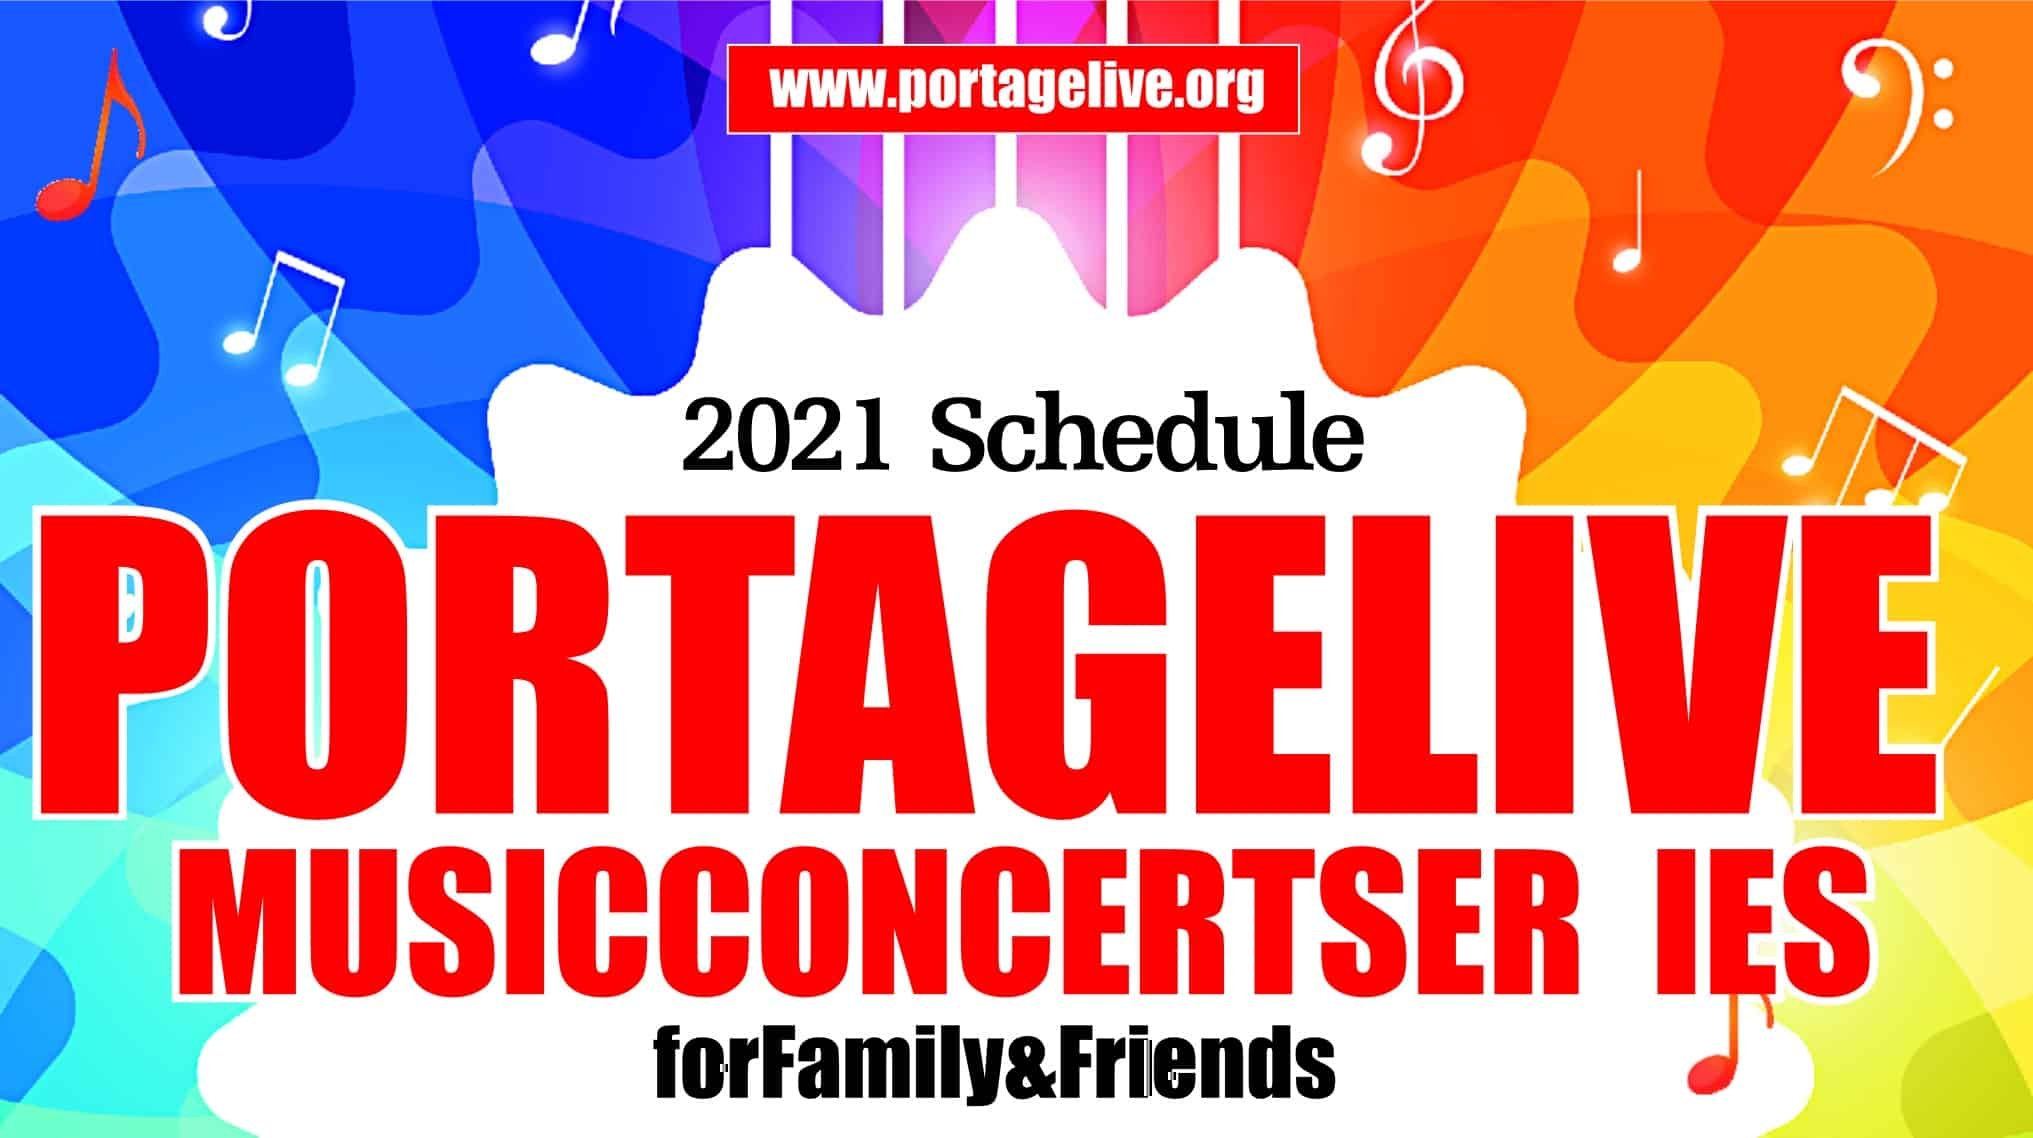 portage live 2021 free concerts in the park woodland park indiana